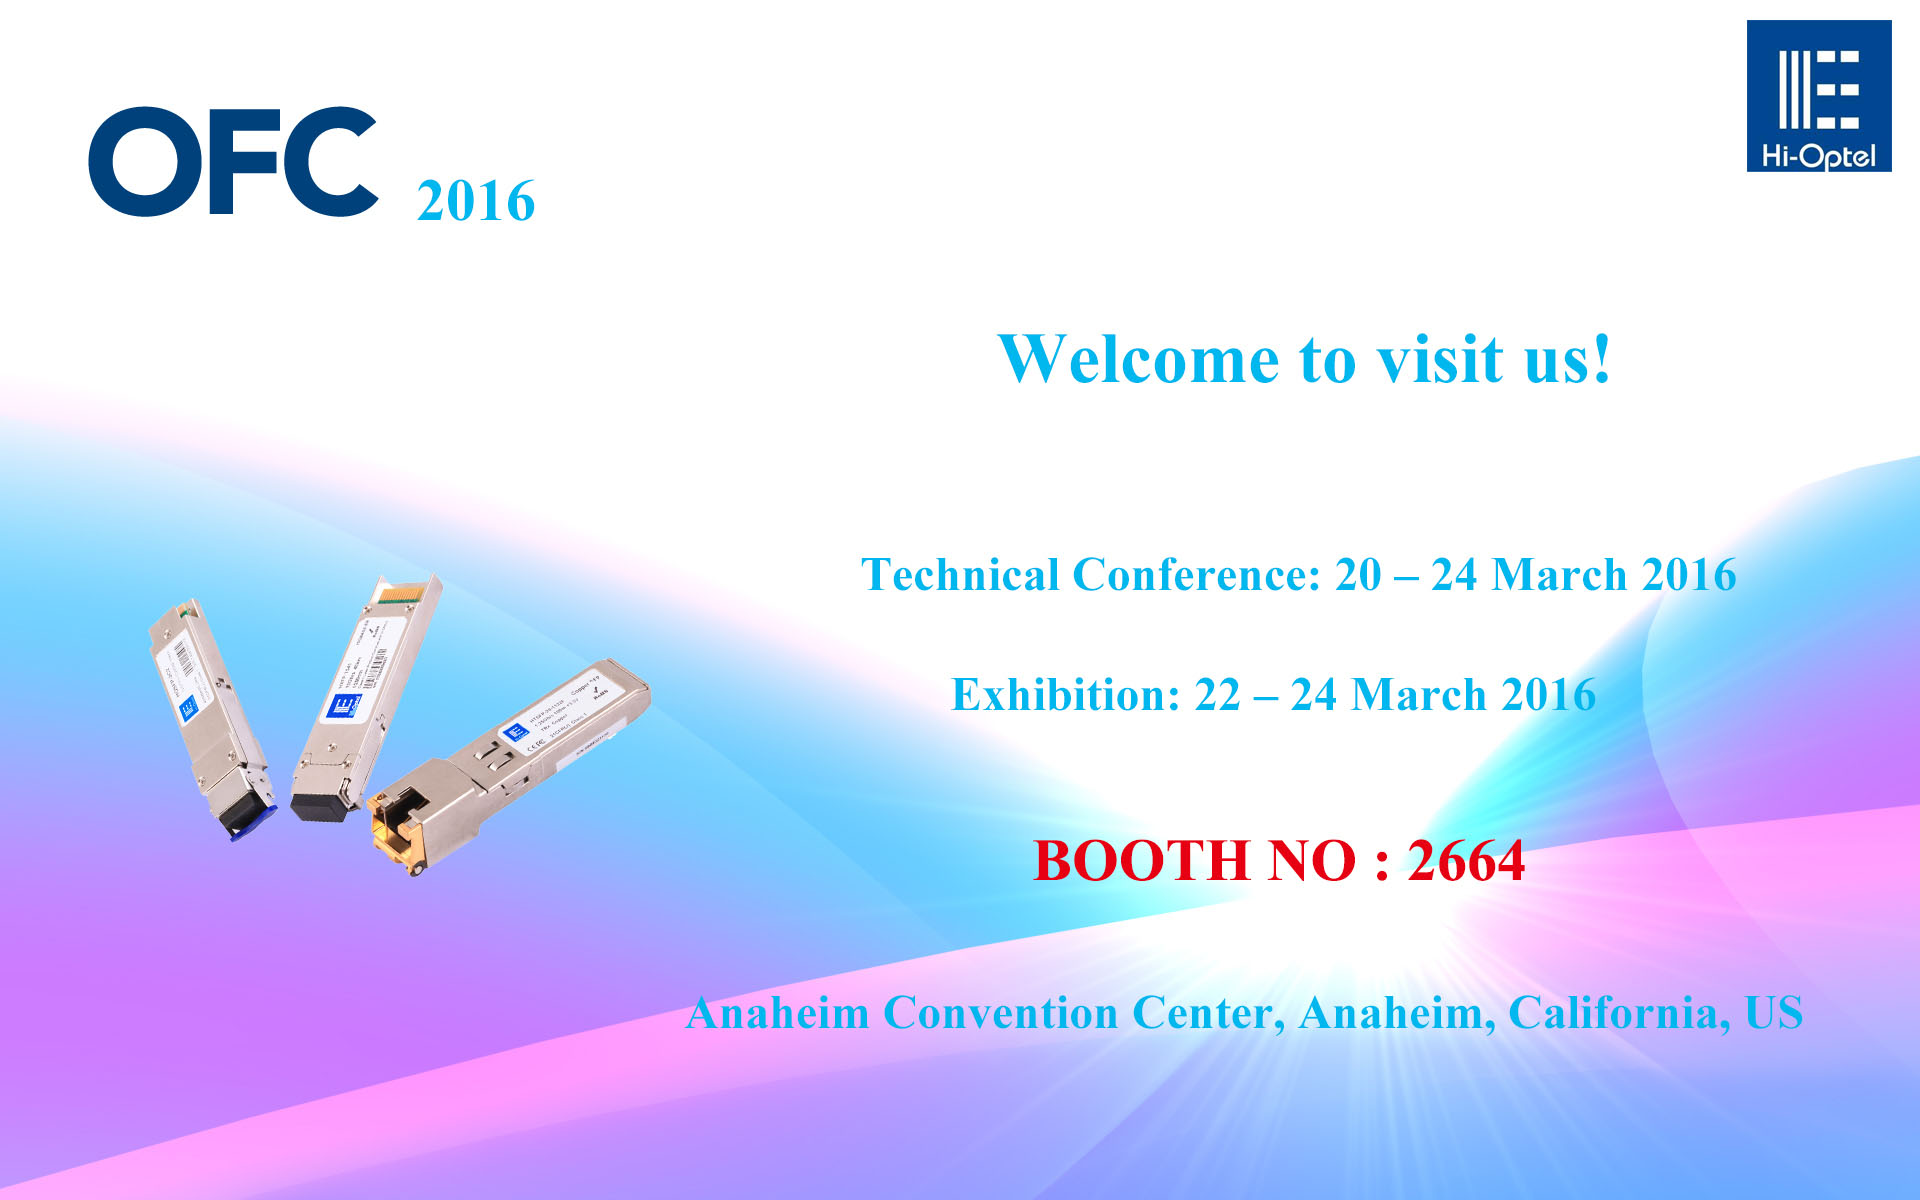 Hi-optel Will Attend to OFC 2016 Exhibition